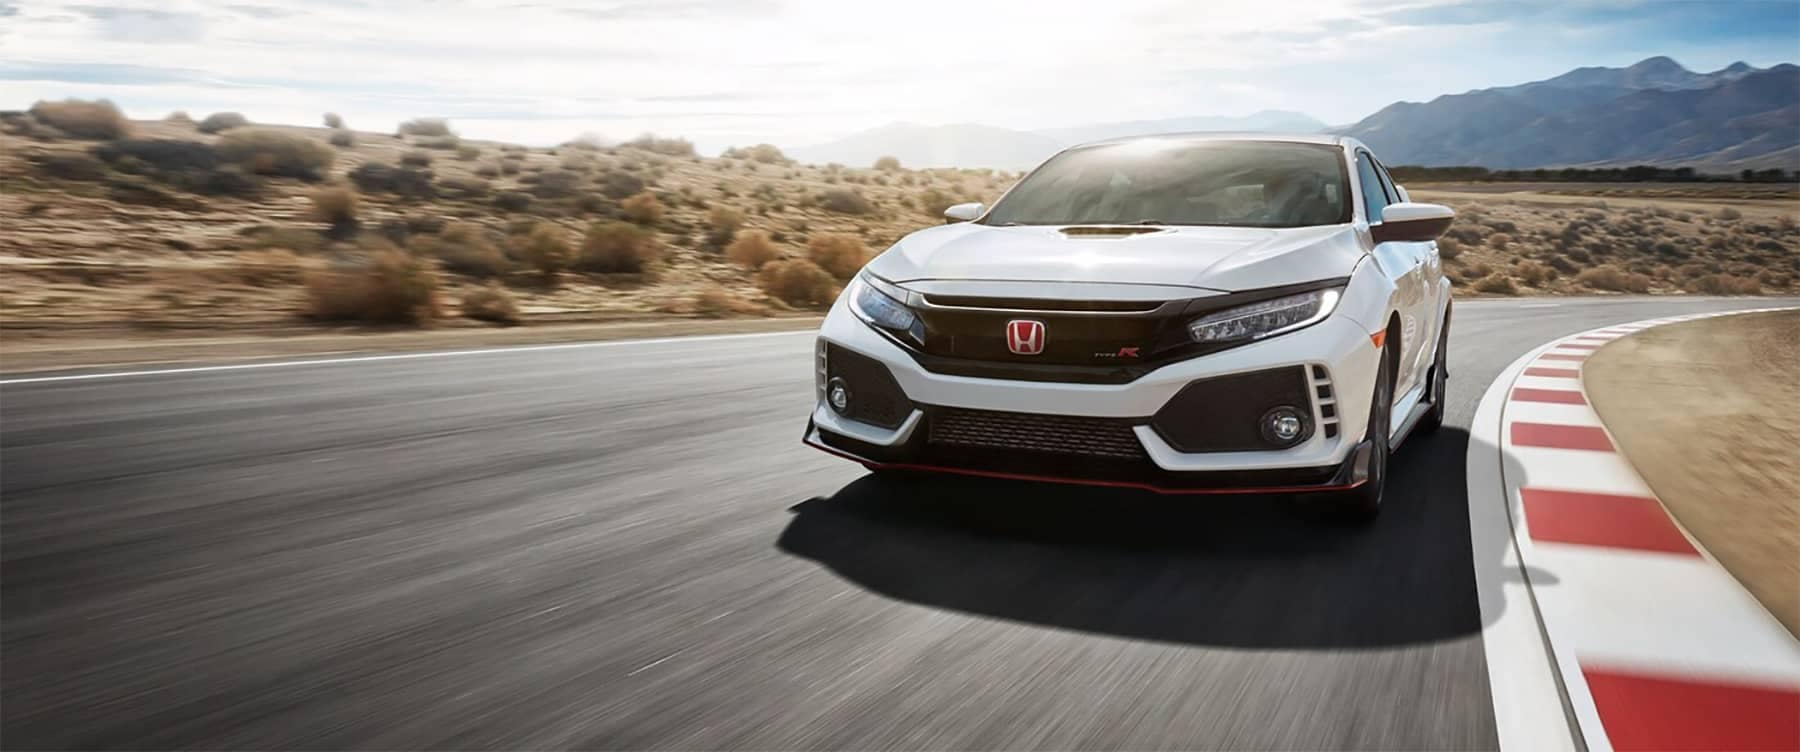 2019 Honda Civic Type R Driving